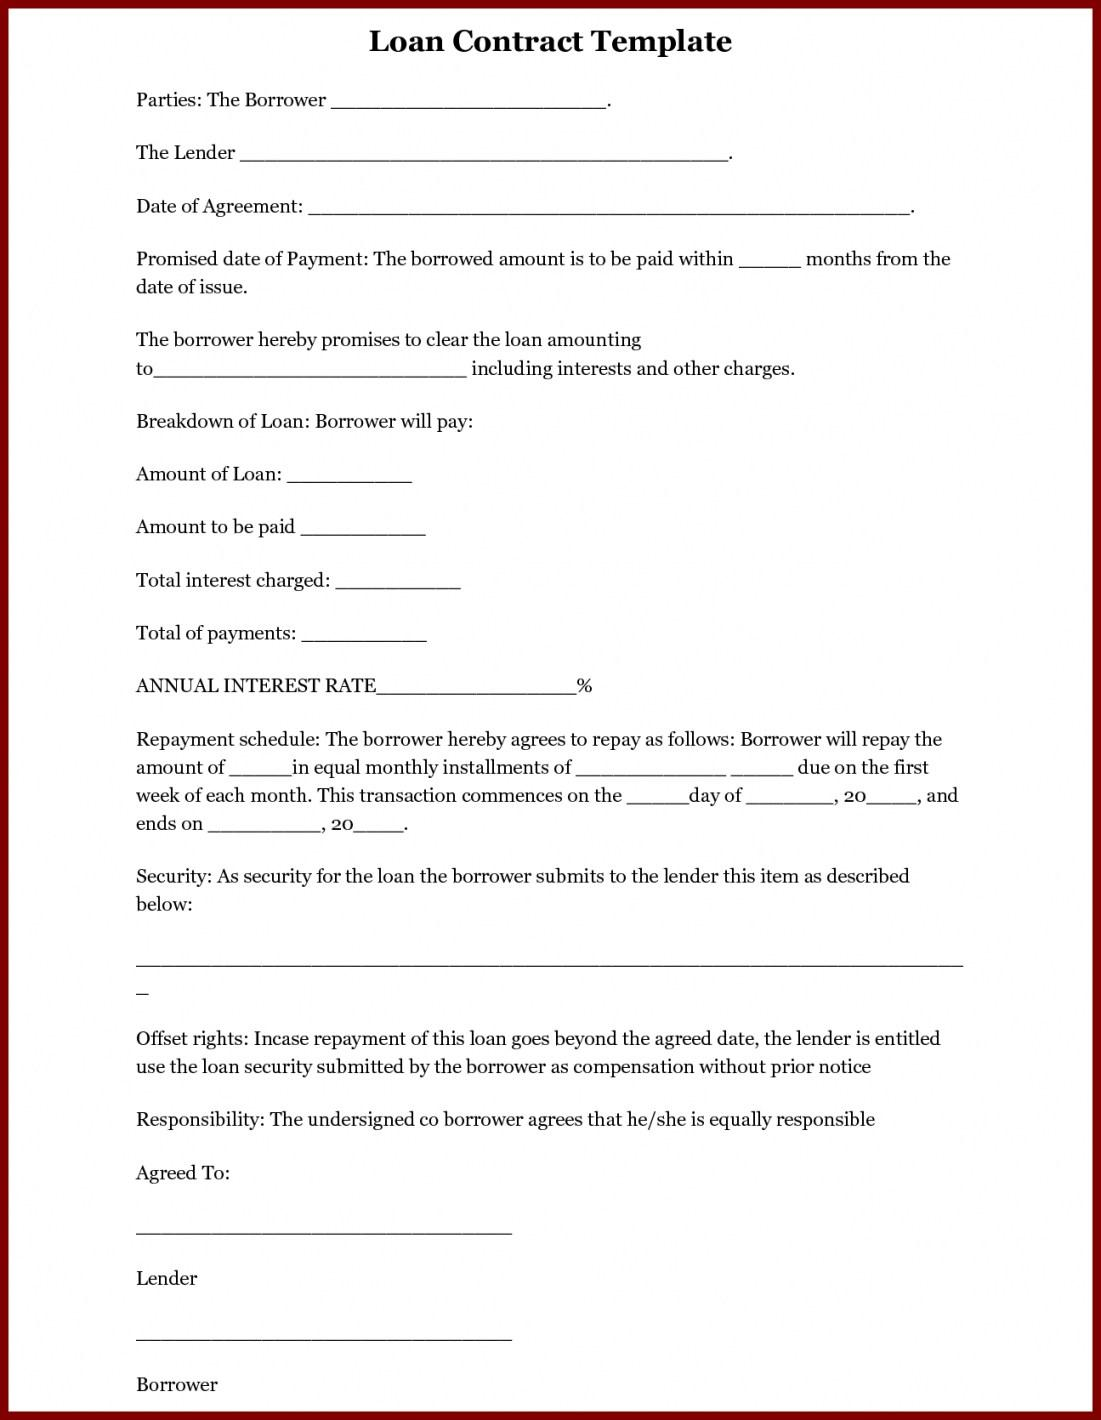 Employee Loan Promissory Note Template